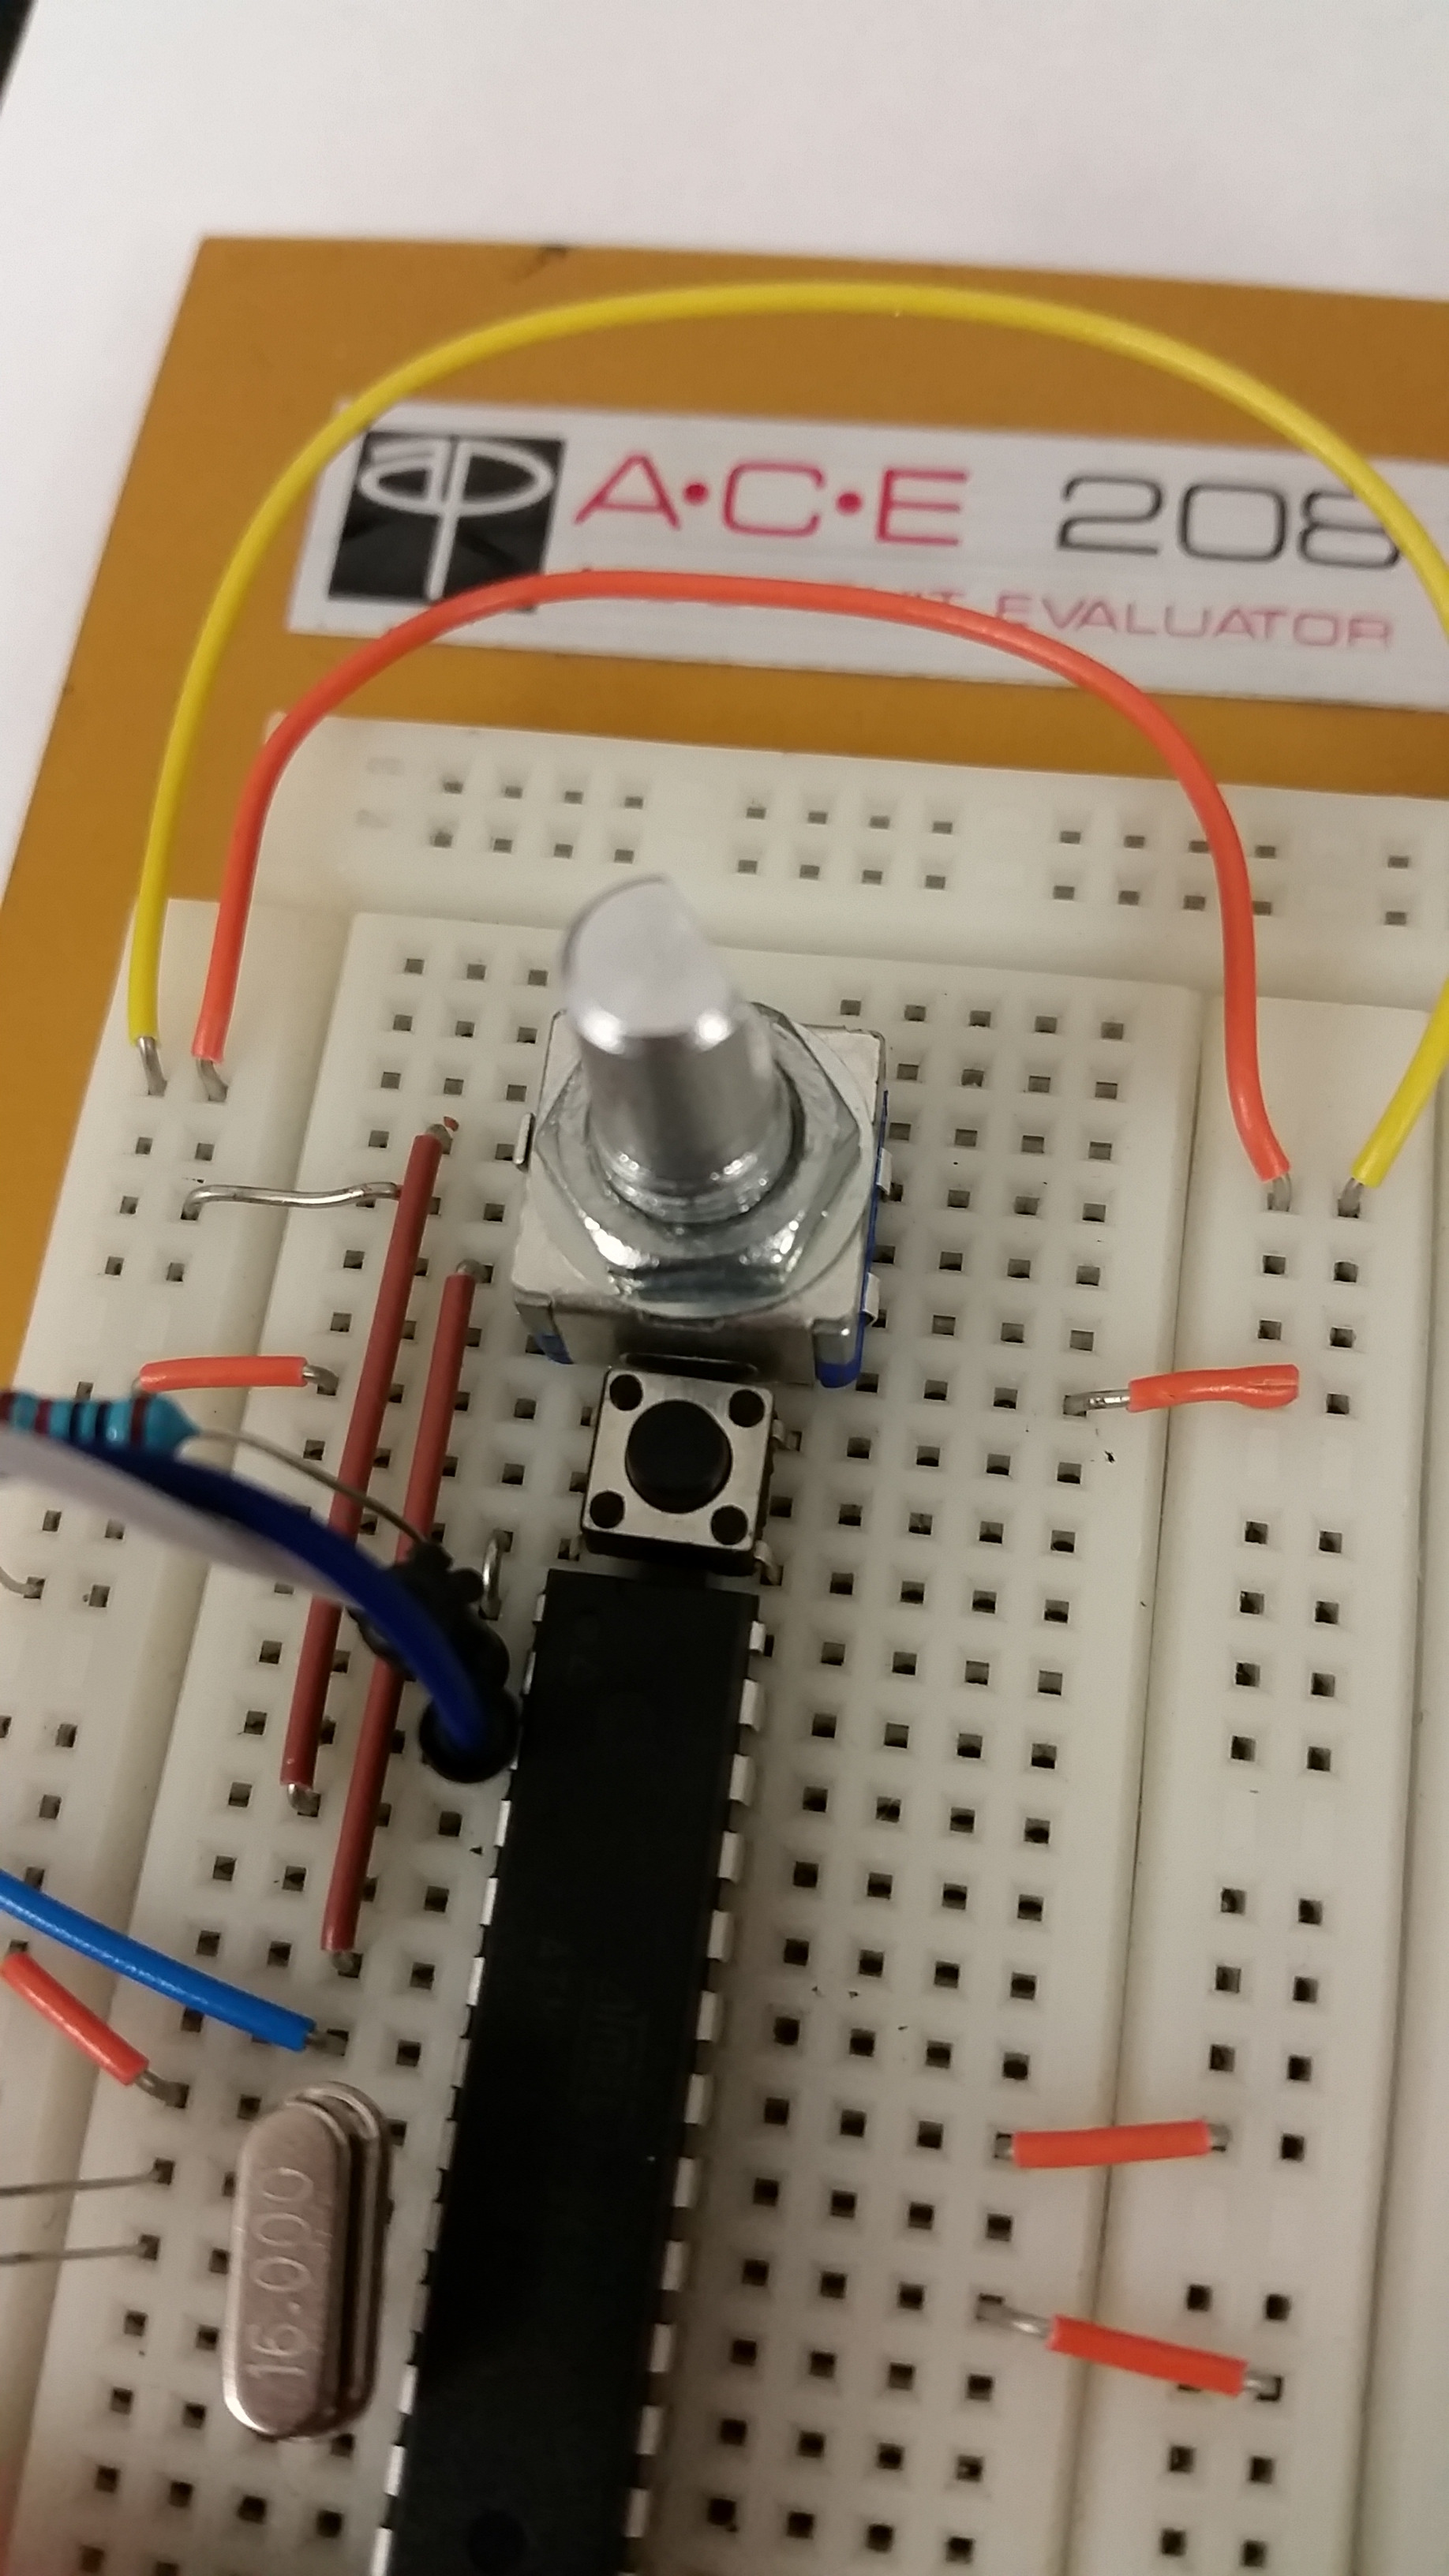 Picture of The Rotary Encoder